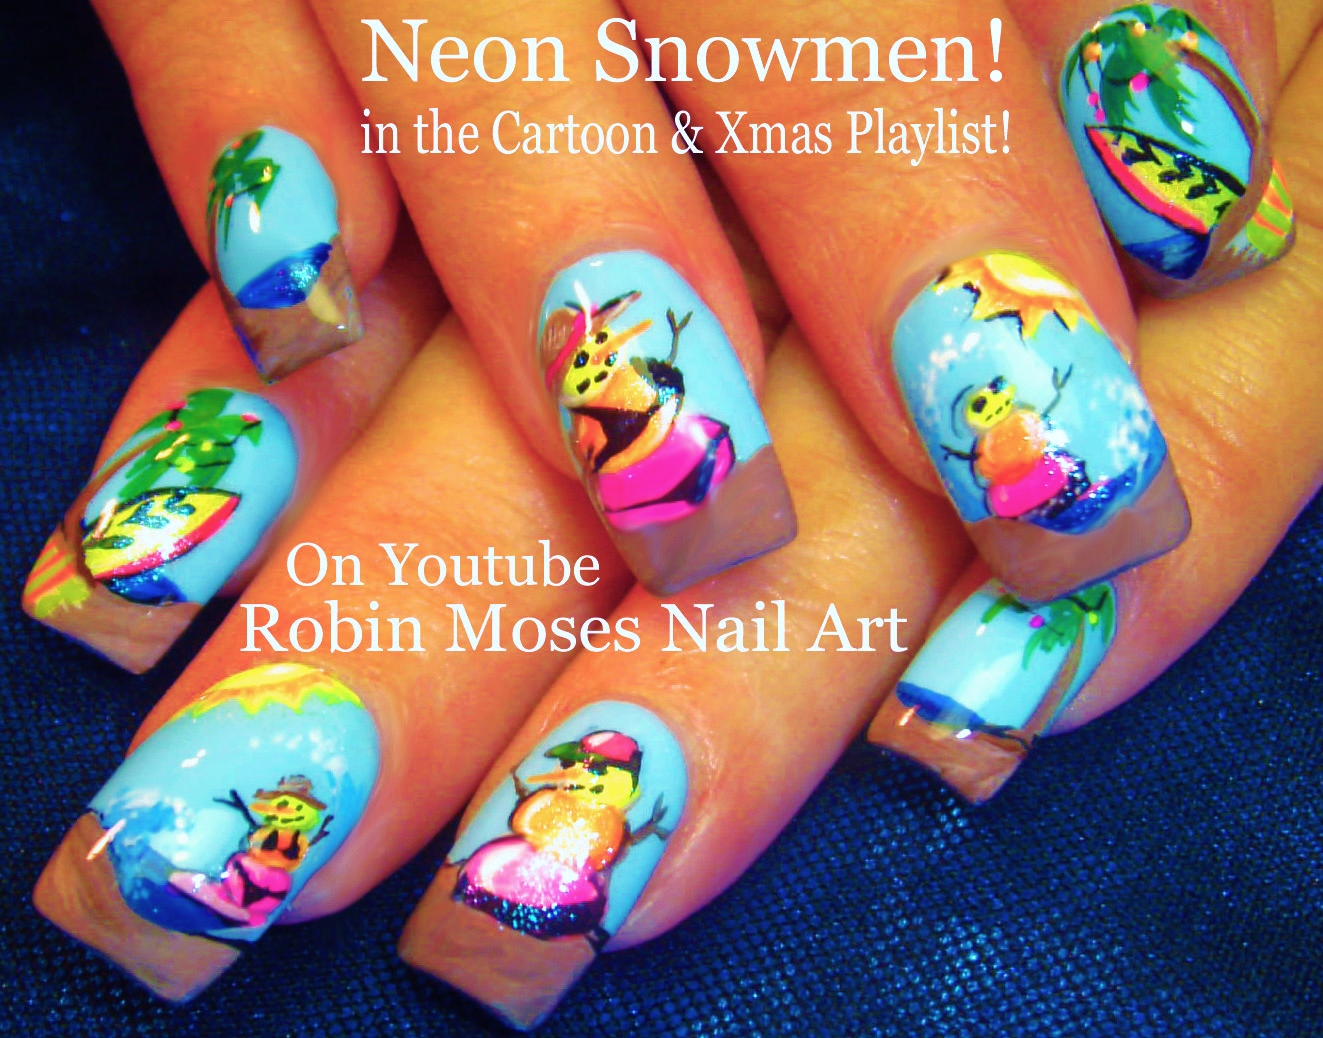 Neon Summer Snowman Nail Design Tutorial with Lots of other fun Summer Nail  Art Trends!!! - Robin Moses Nail Art: Neon Summer Snowman Nail Design Tutorial